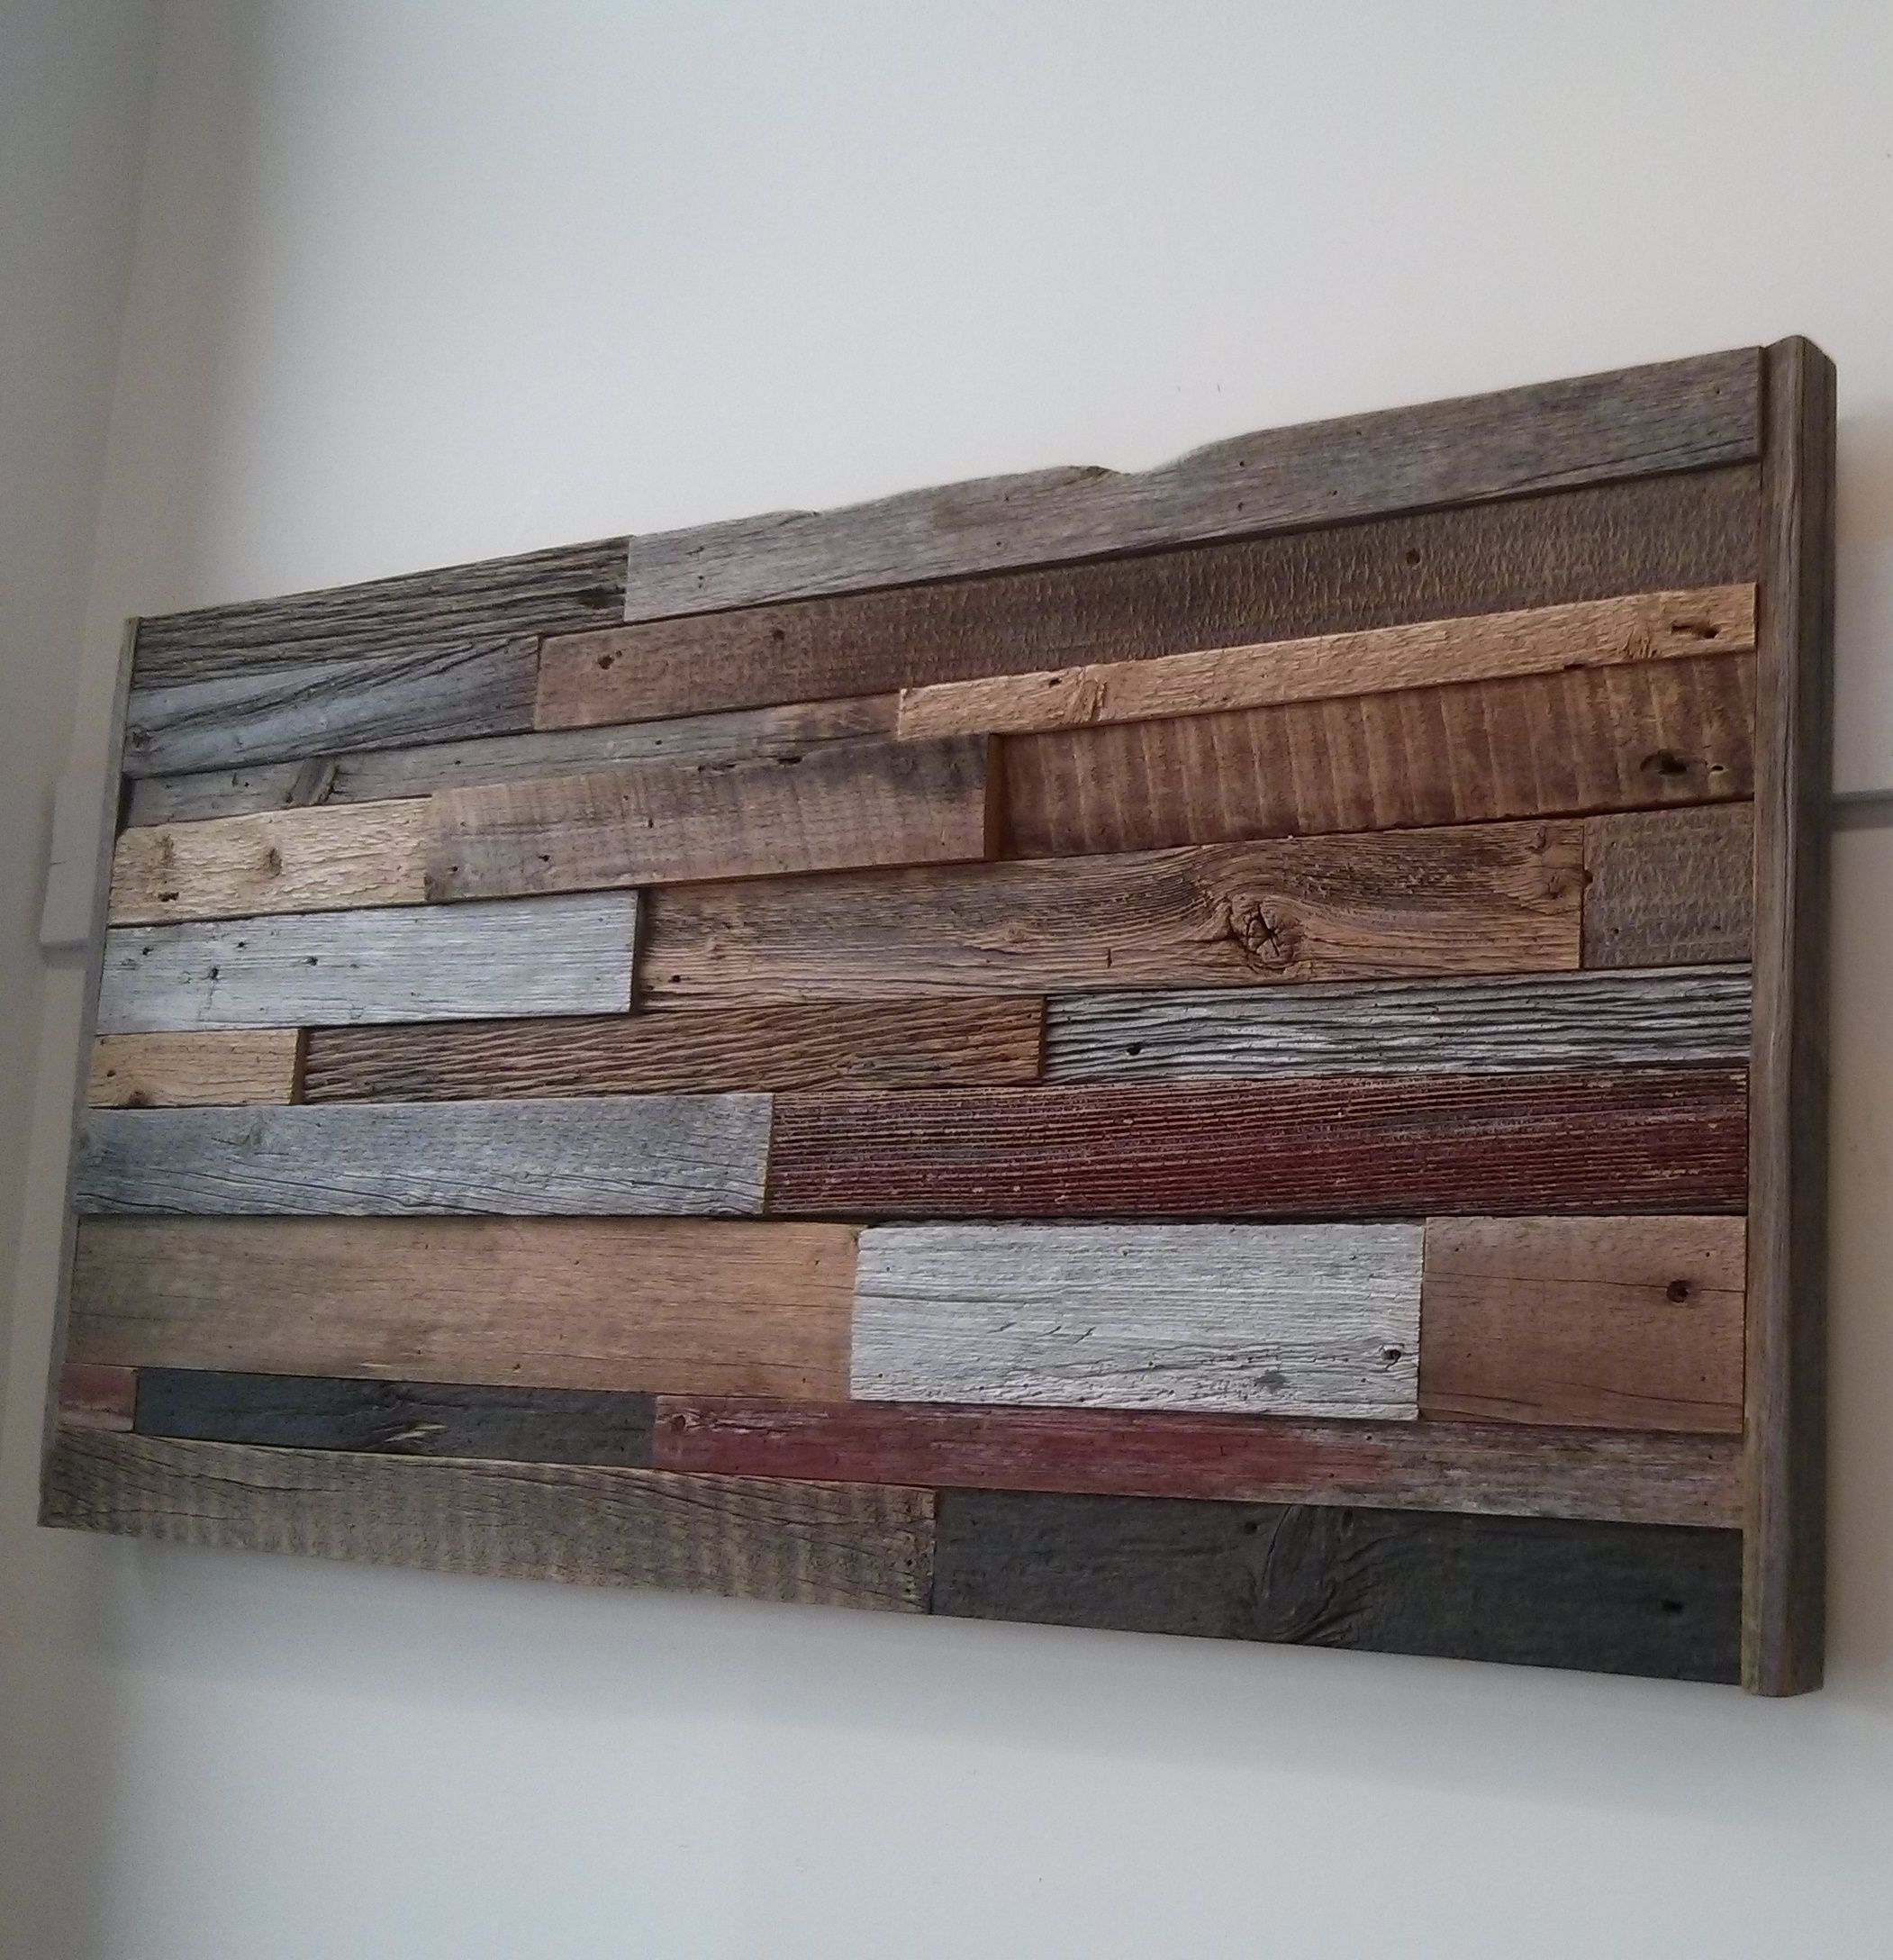 Reclaimed barn board wall art 24 by 50 inches available at ...